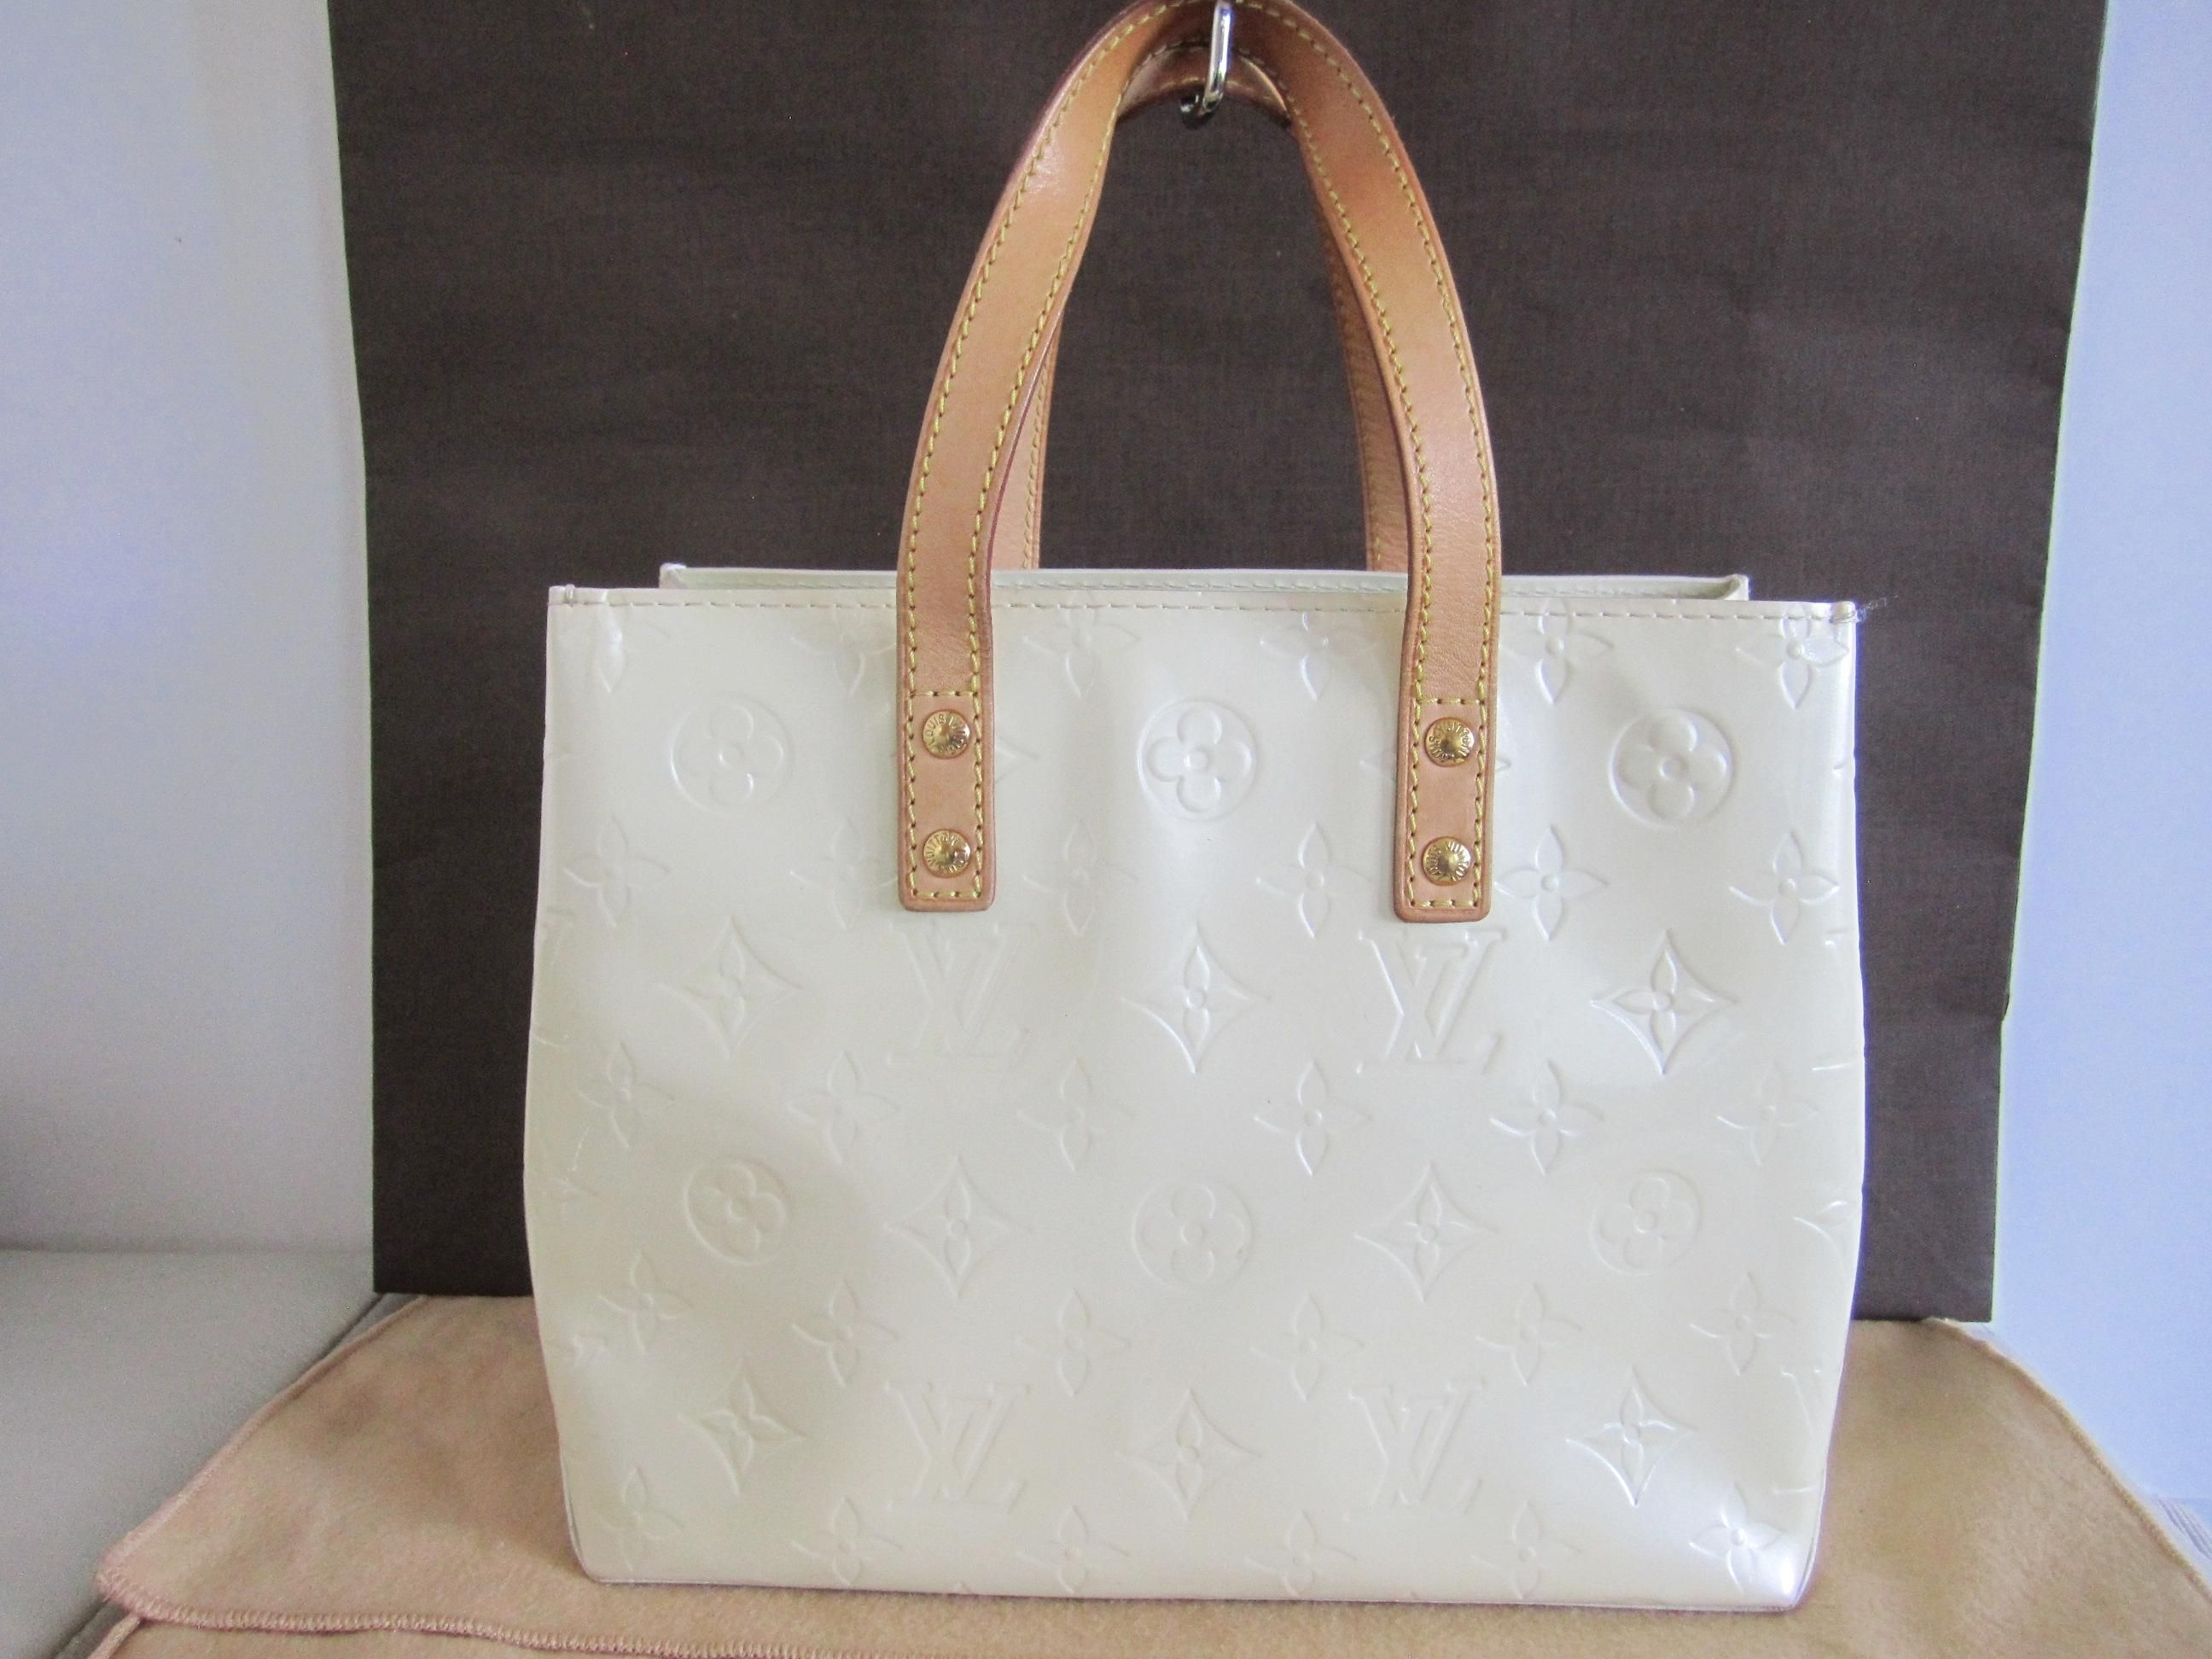 3905dfd20934 Get one of the hottest styles of the season! The Louis Vuitton Reade Vernis  Pearl Tote Bag is a top 10 member favorite on Tradesy.